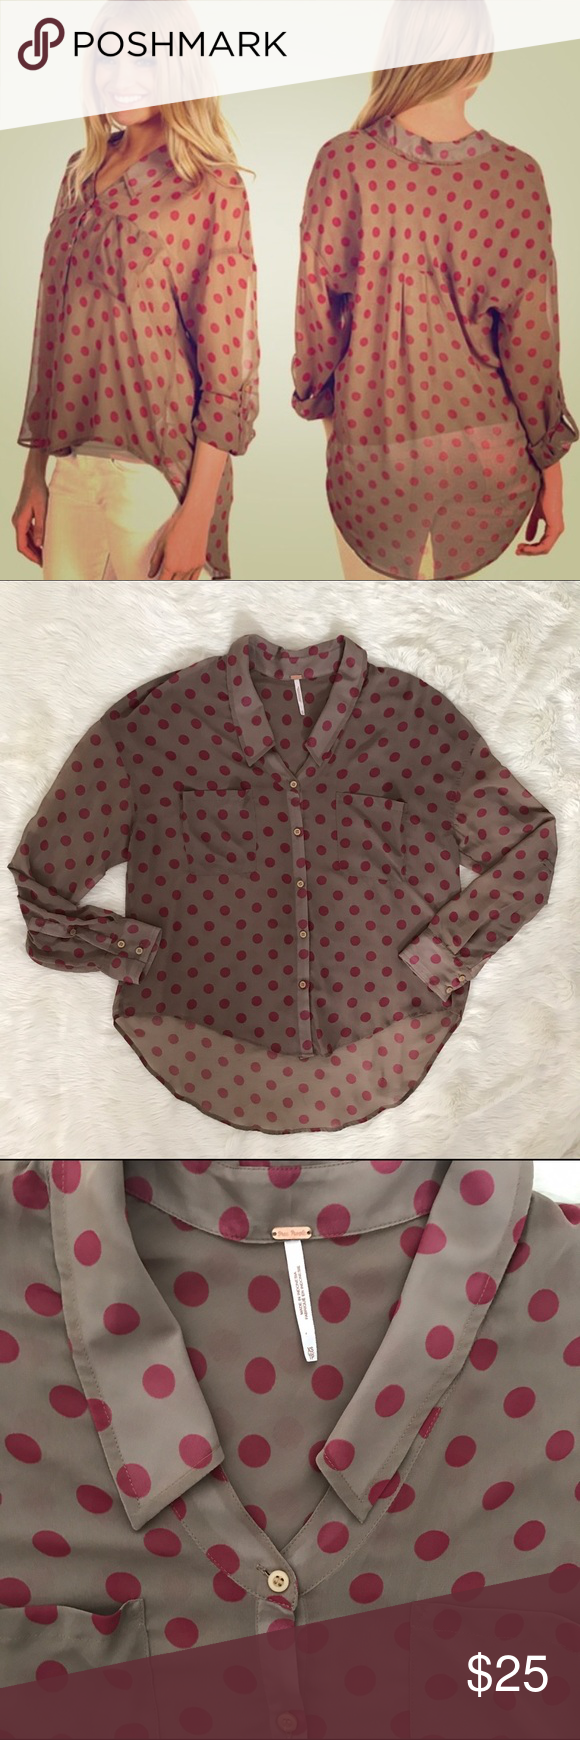 Free People pink brown polka dot Blouse Top small This is a Free People light brown and pink color Blouse. It is in excellent condition with no flaws. Size small and 100% polyester. Free People Tops Blouses